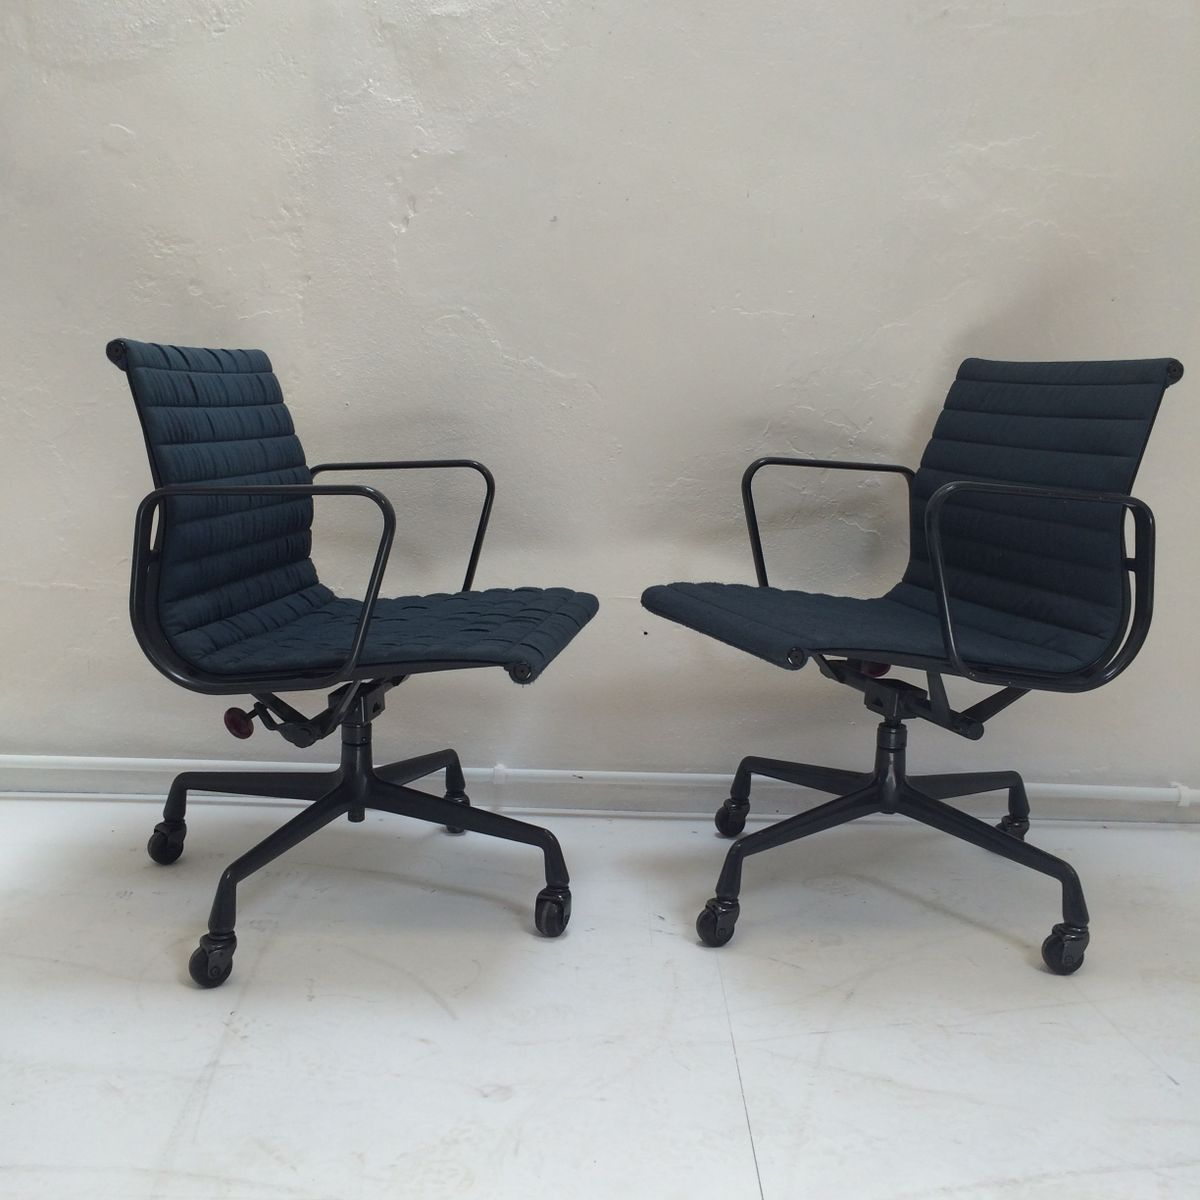 ea108 aluminium office chair by charles eames for herman